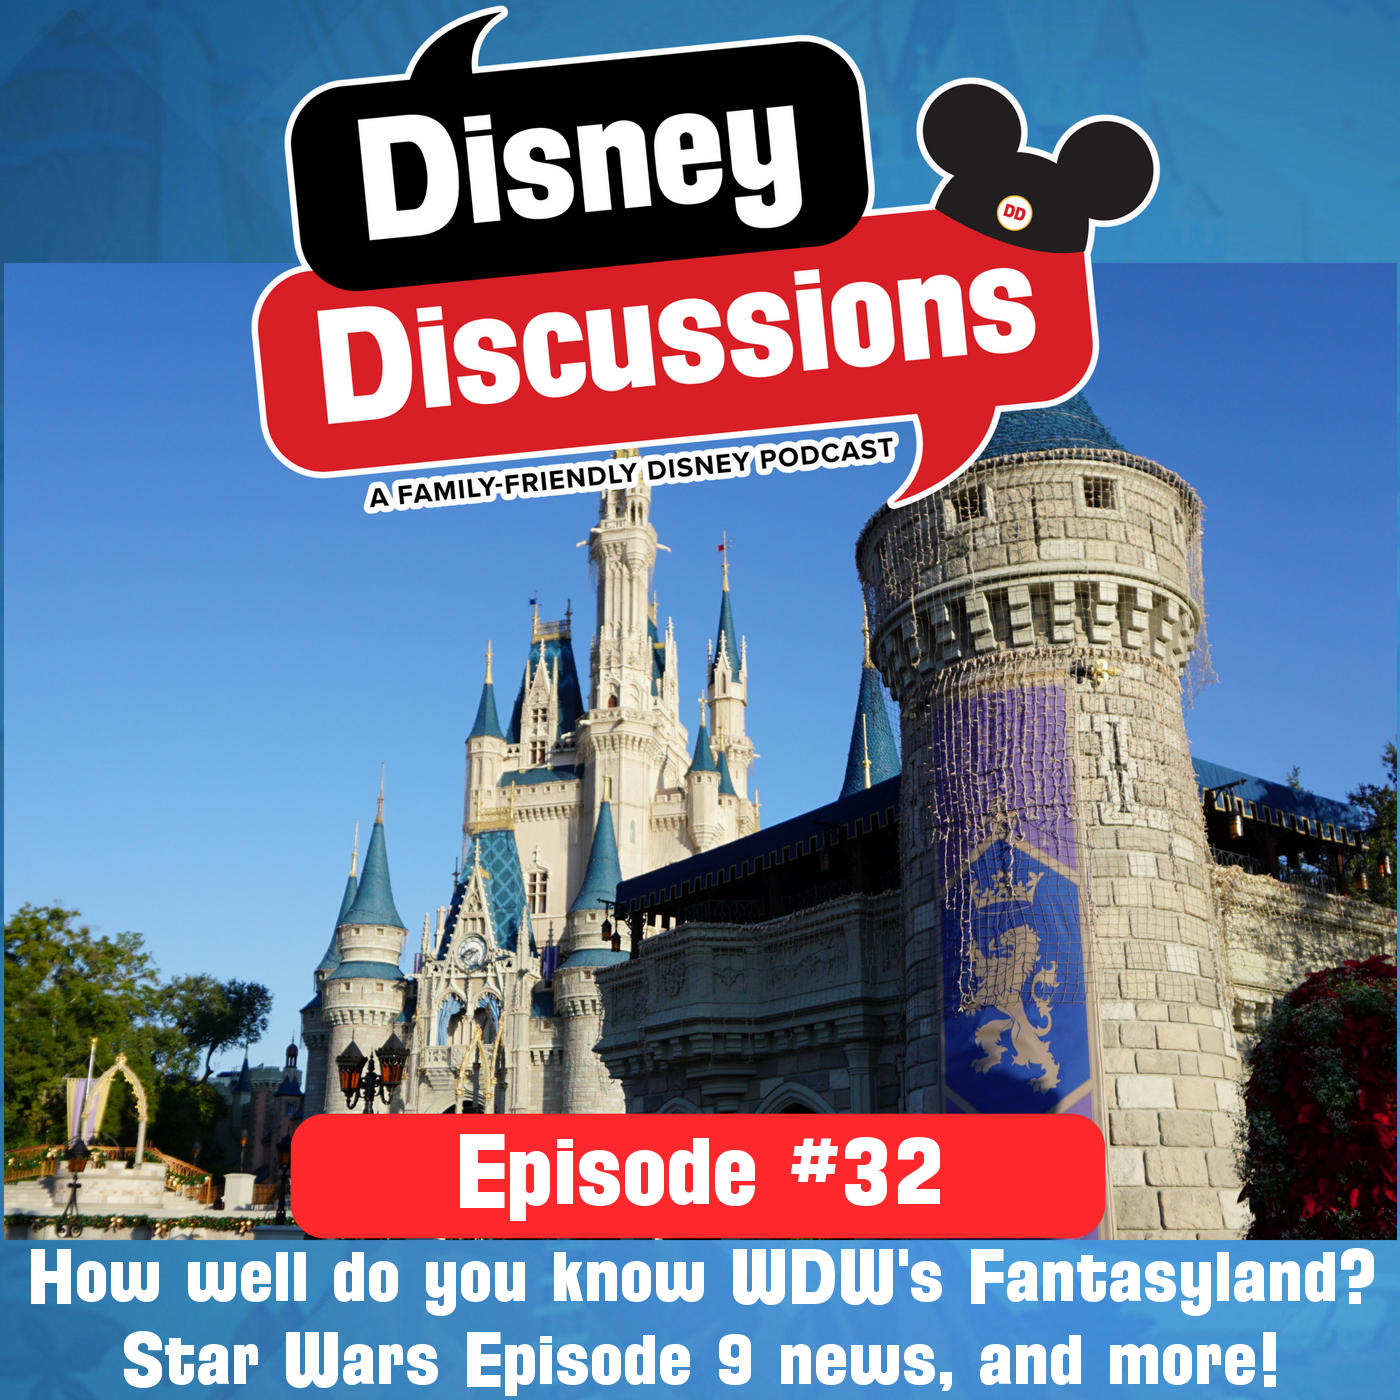 How well do you know WDW's Fantasyland?, Star wars Episode 9 news, and more! - 32